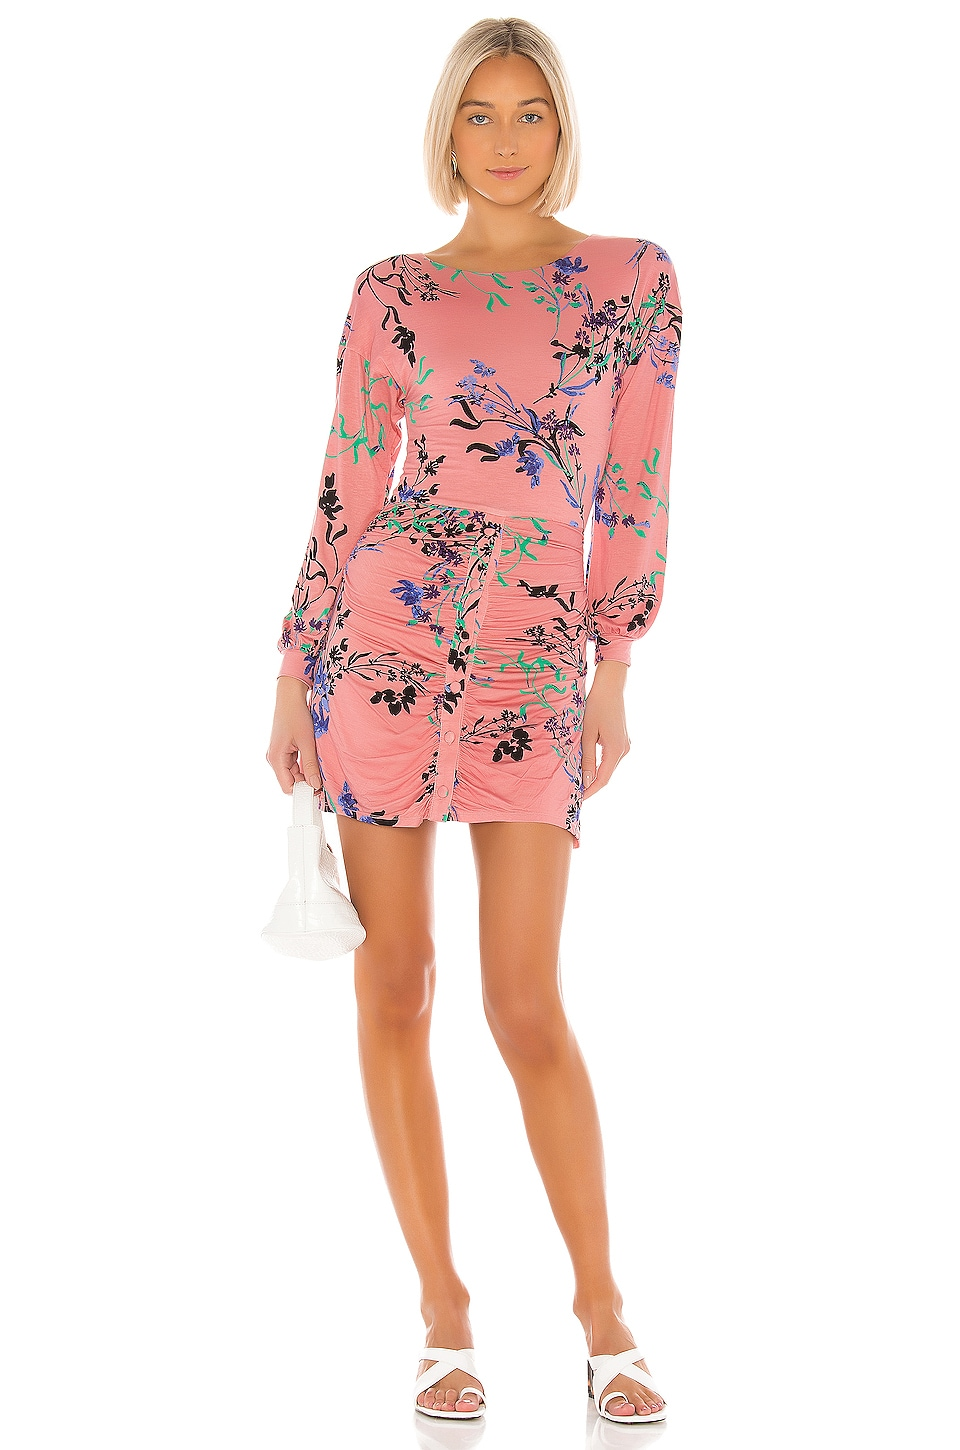 House of Harlow 1960 X REVOLVE Siri Dress in Blush Fleur